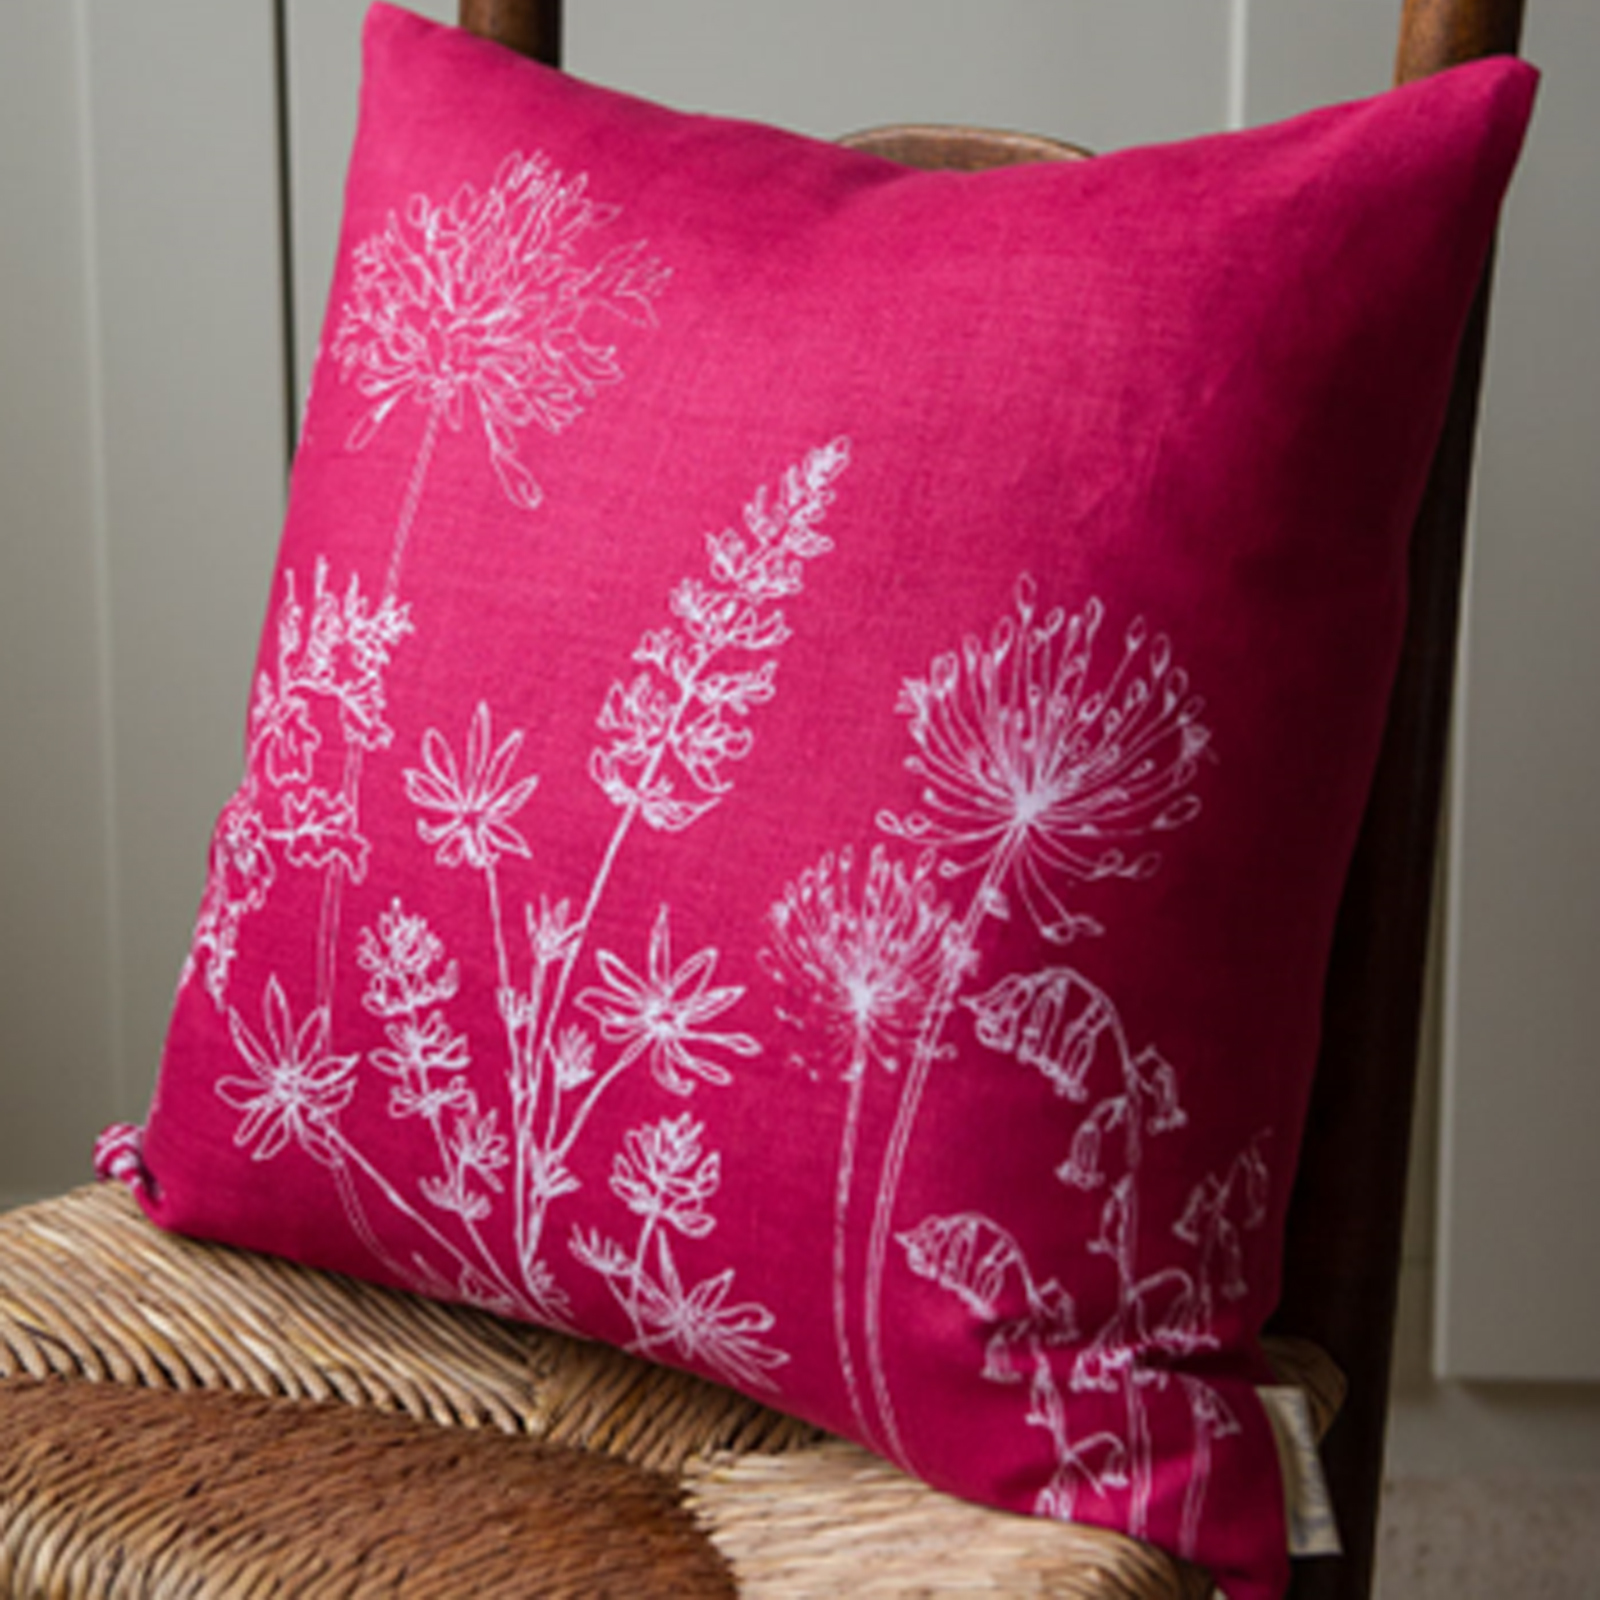 Cushion - Hand Printed Linen in Indigo Blue - Country Garden Collection by Helen Round